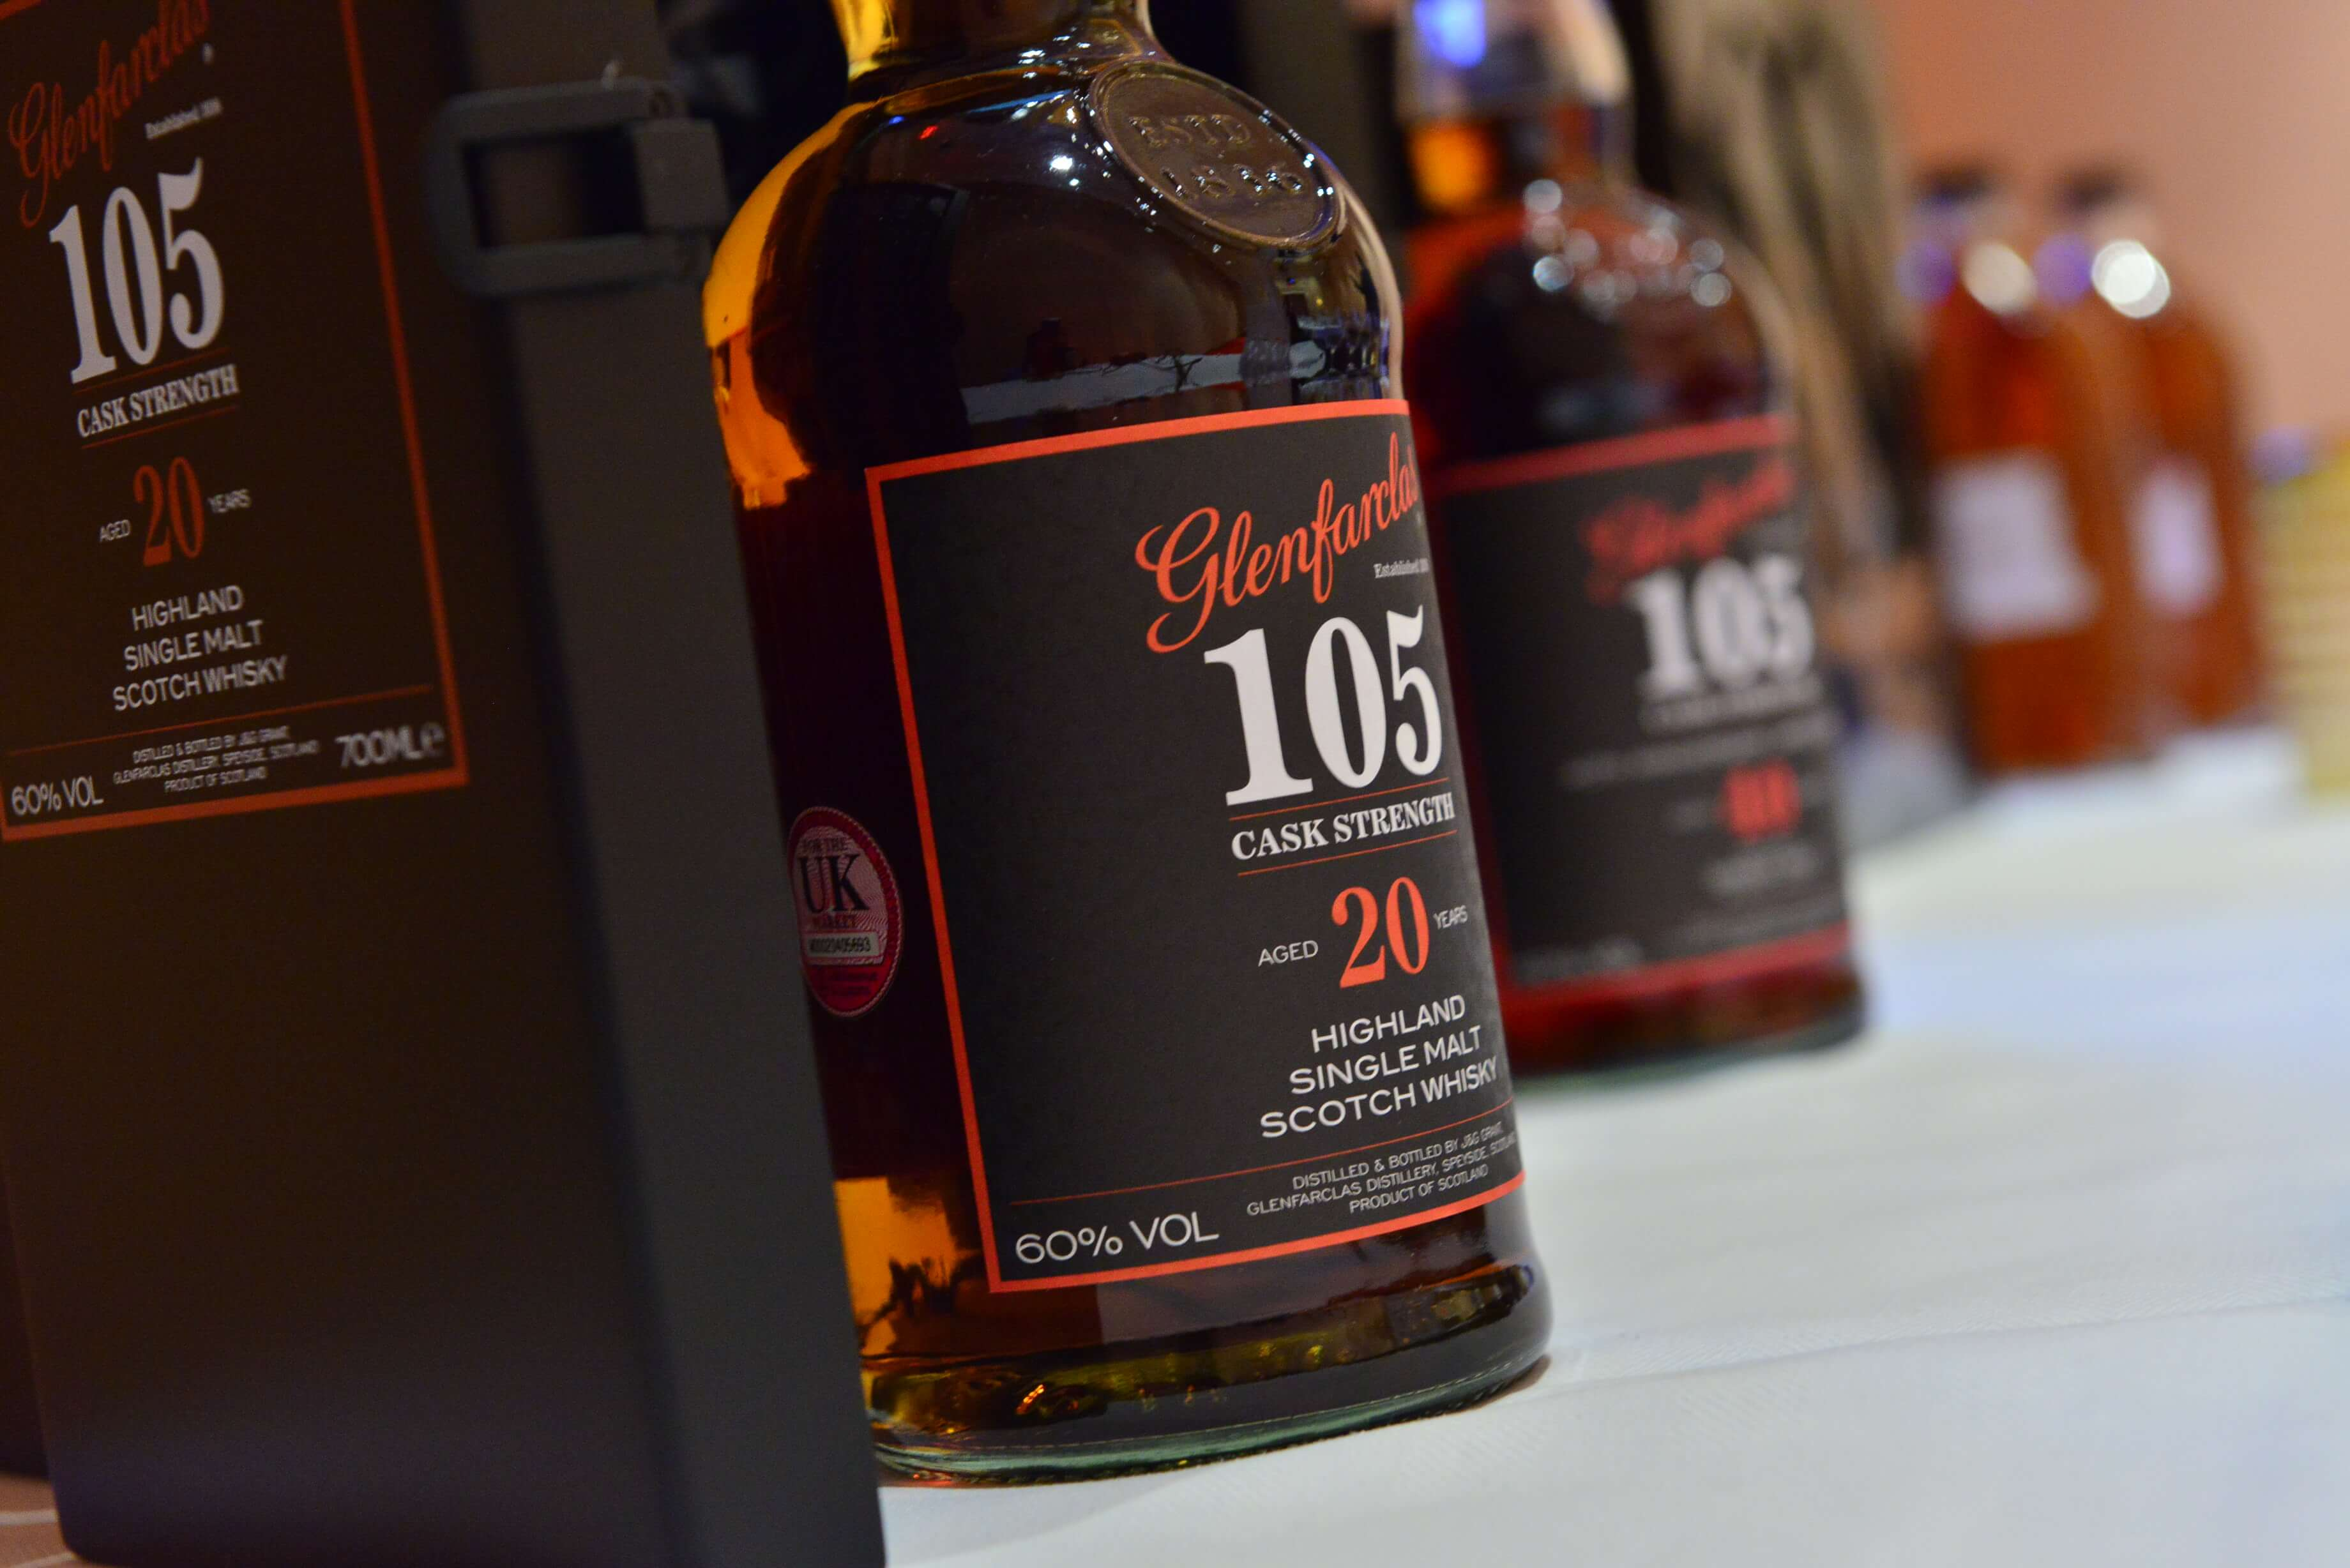 The Whisky Events